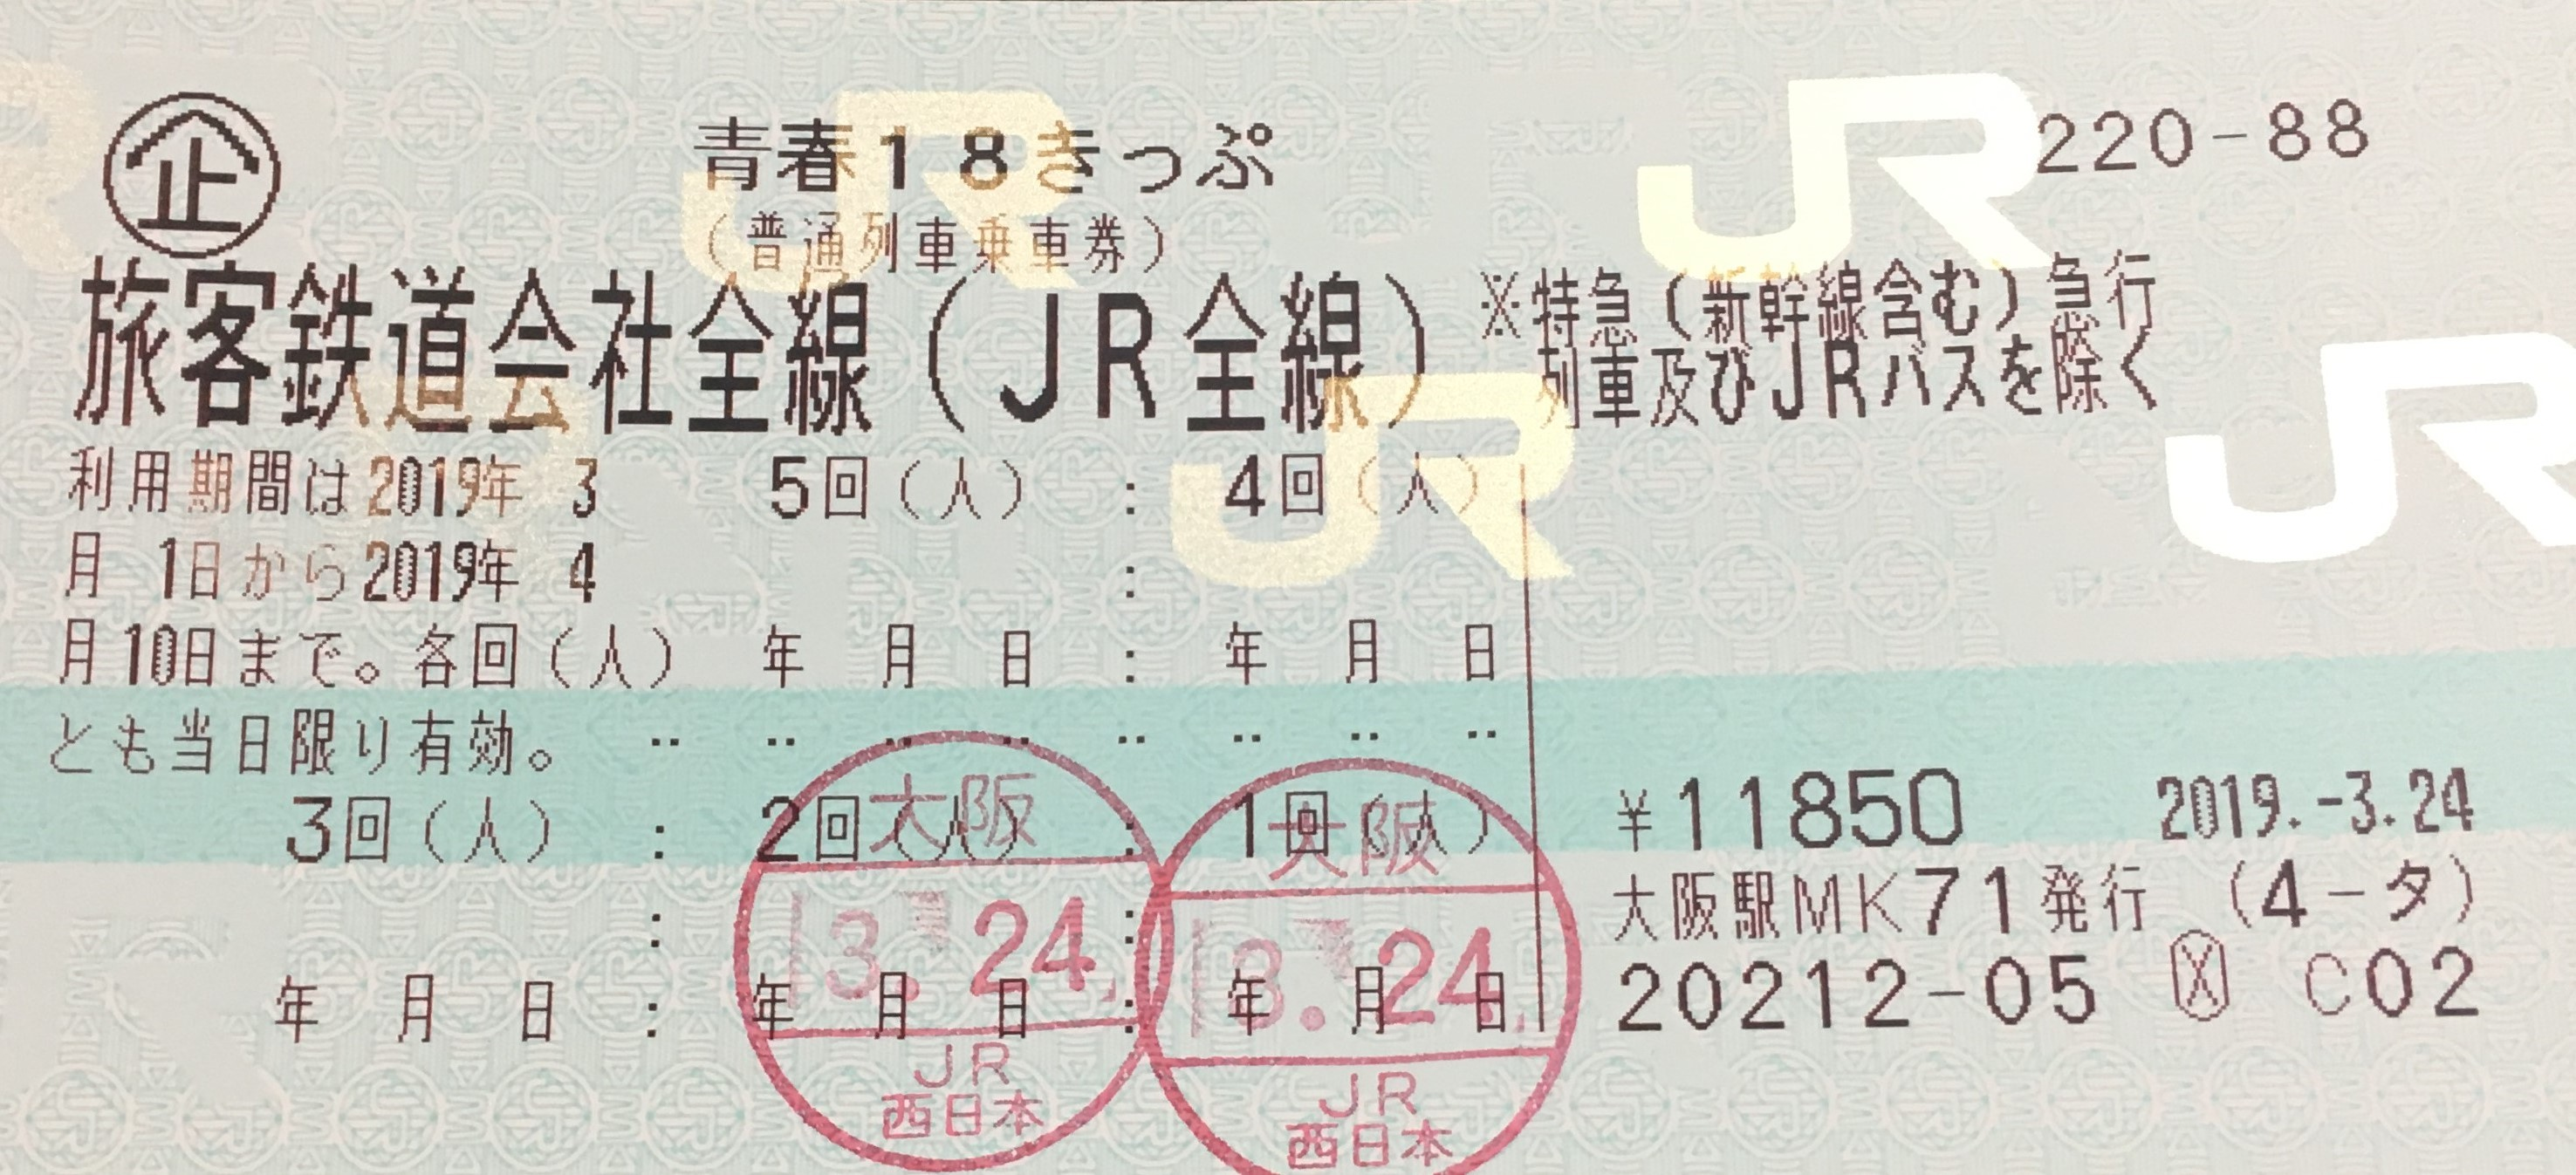 a ticket of the current 18 kippu